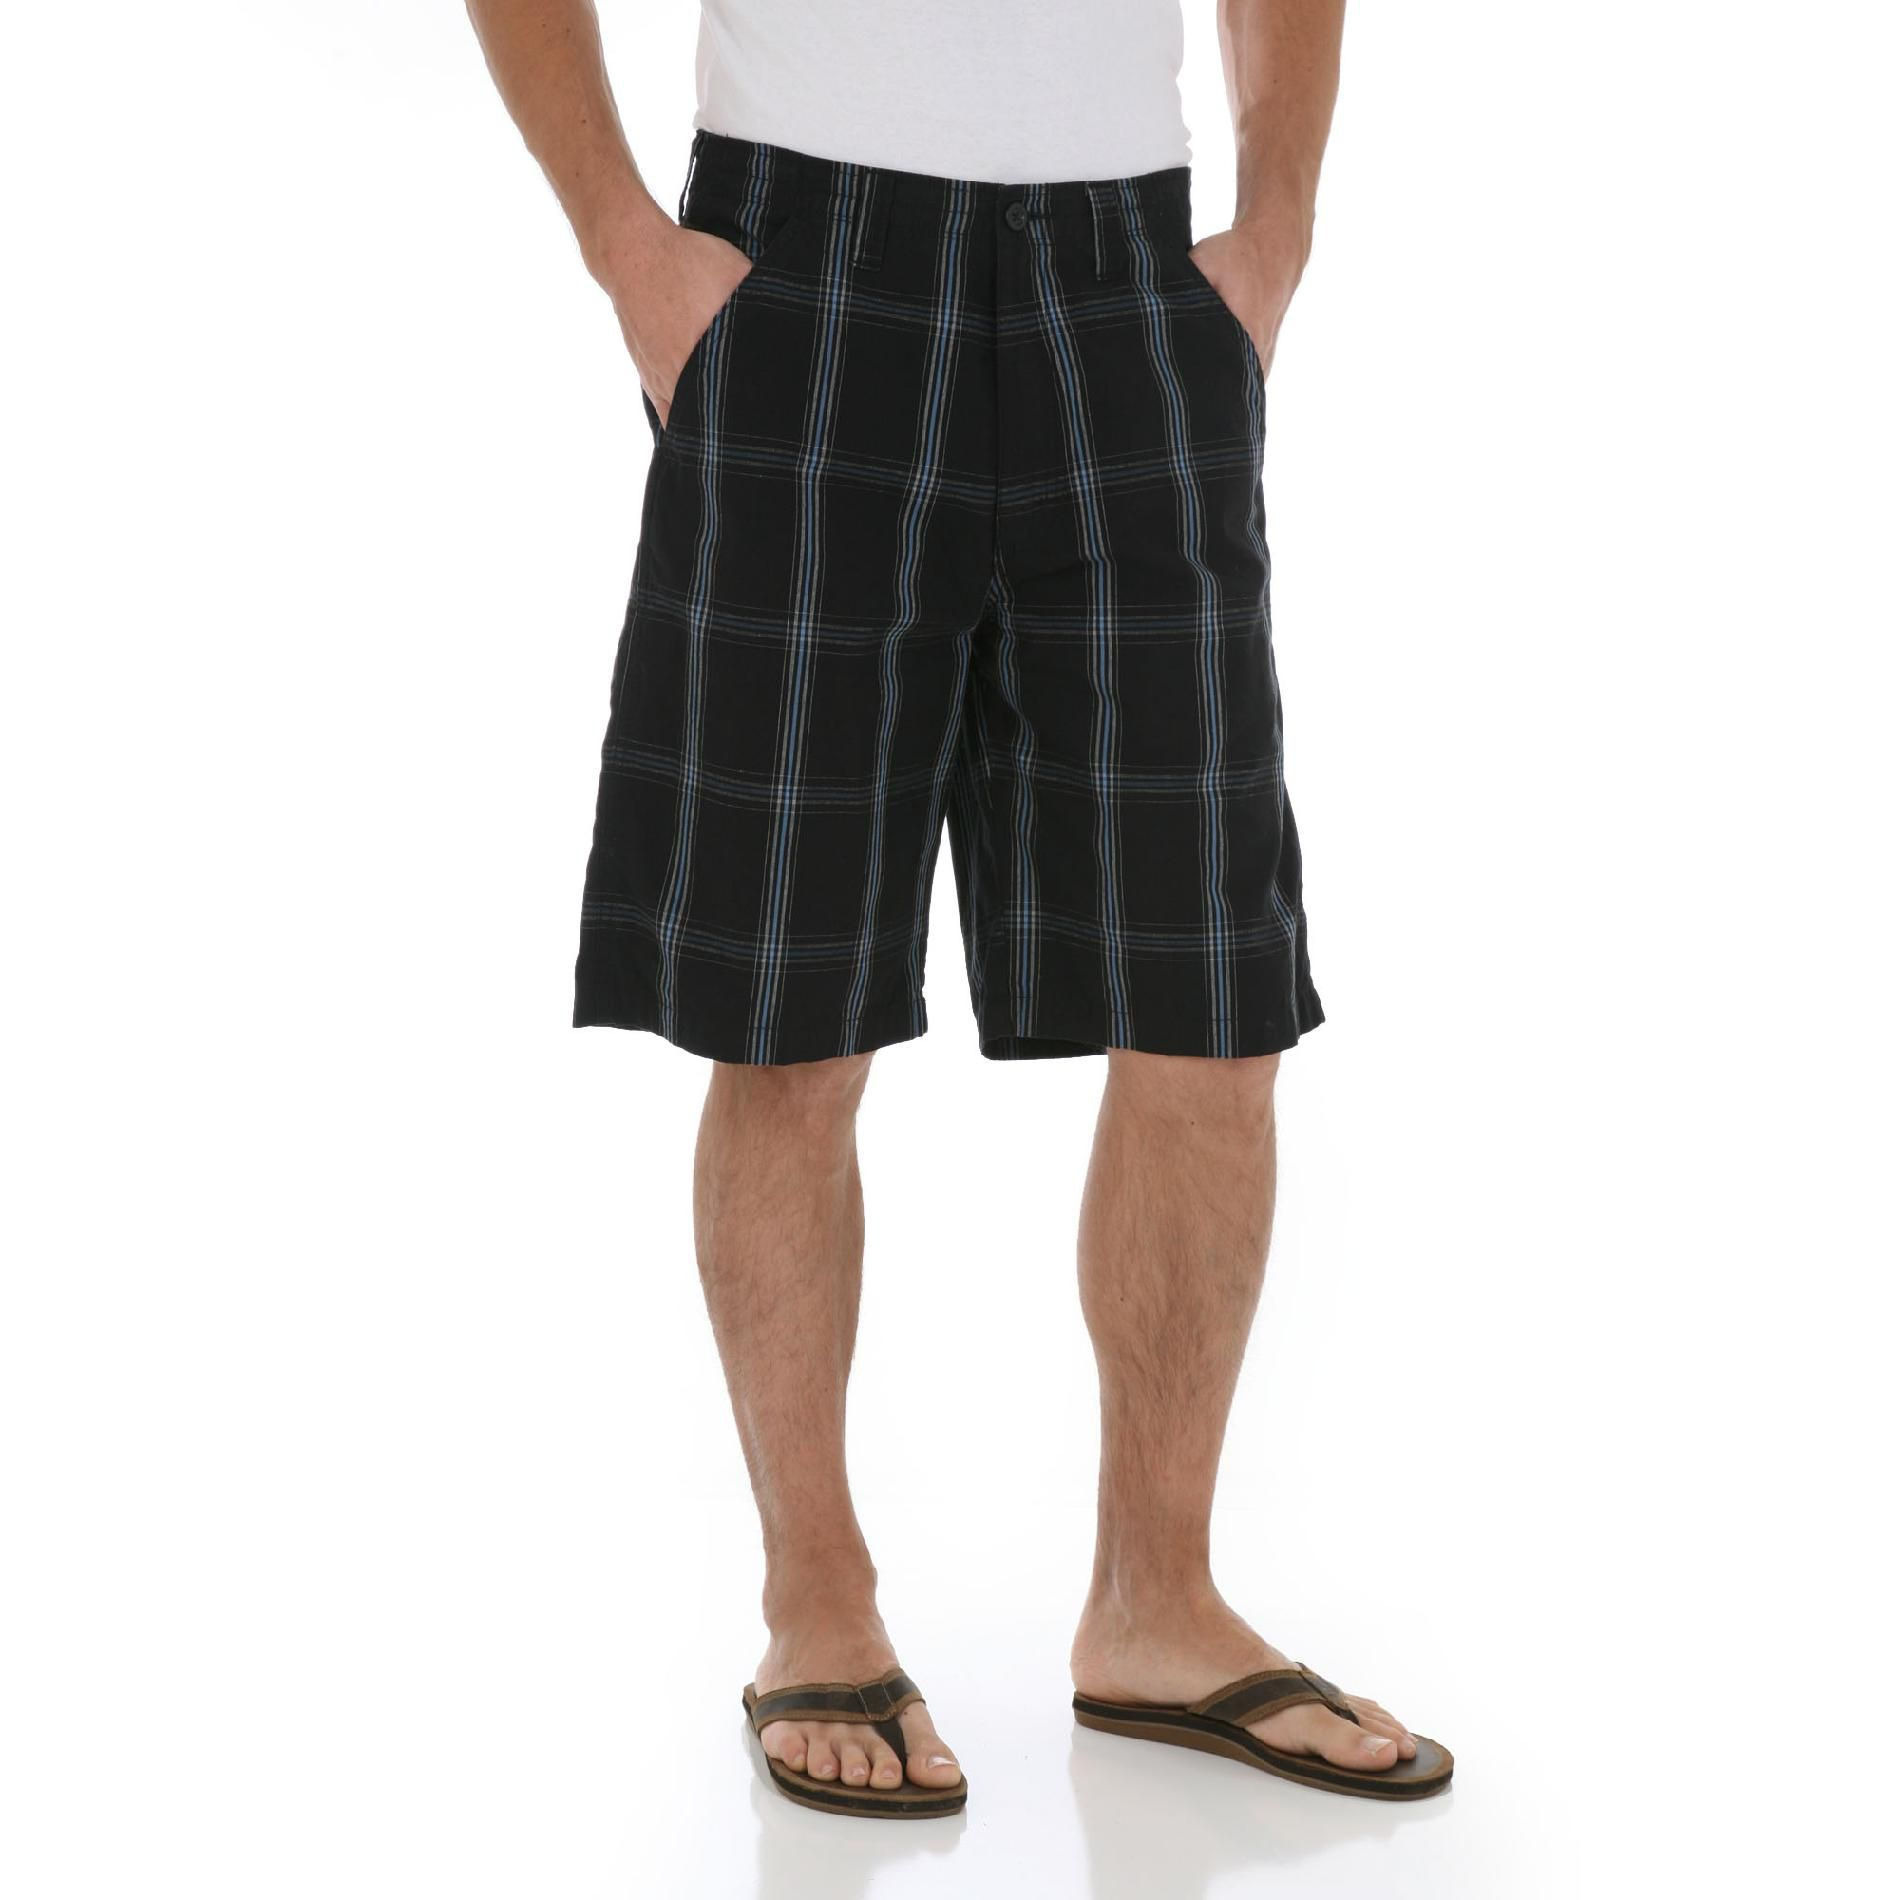 Wrangler Men's Flat Front Plaid Shorts at Kmart.com